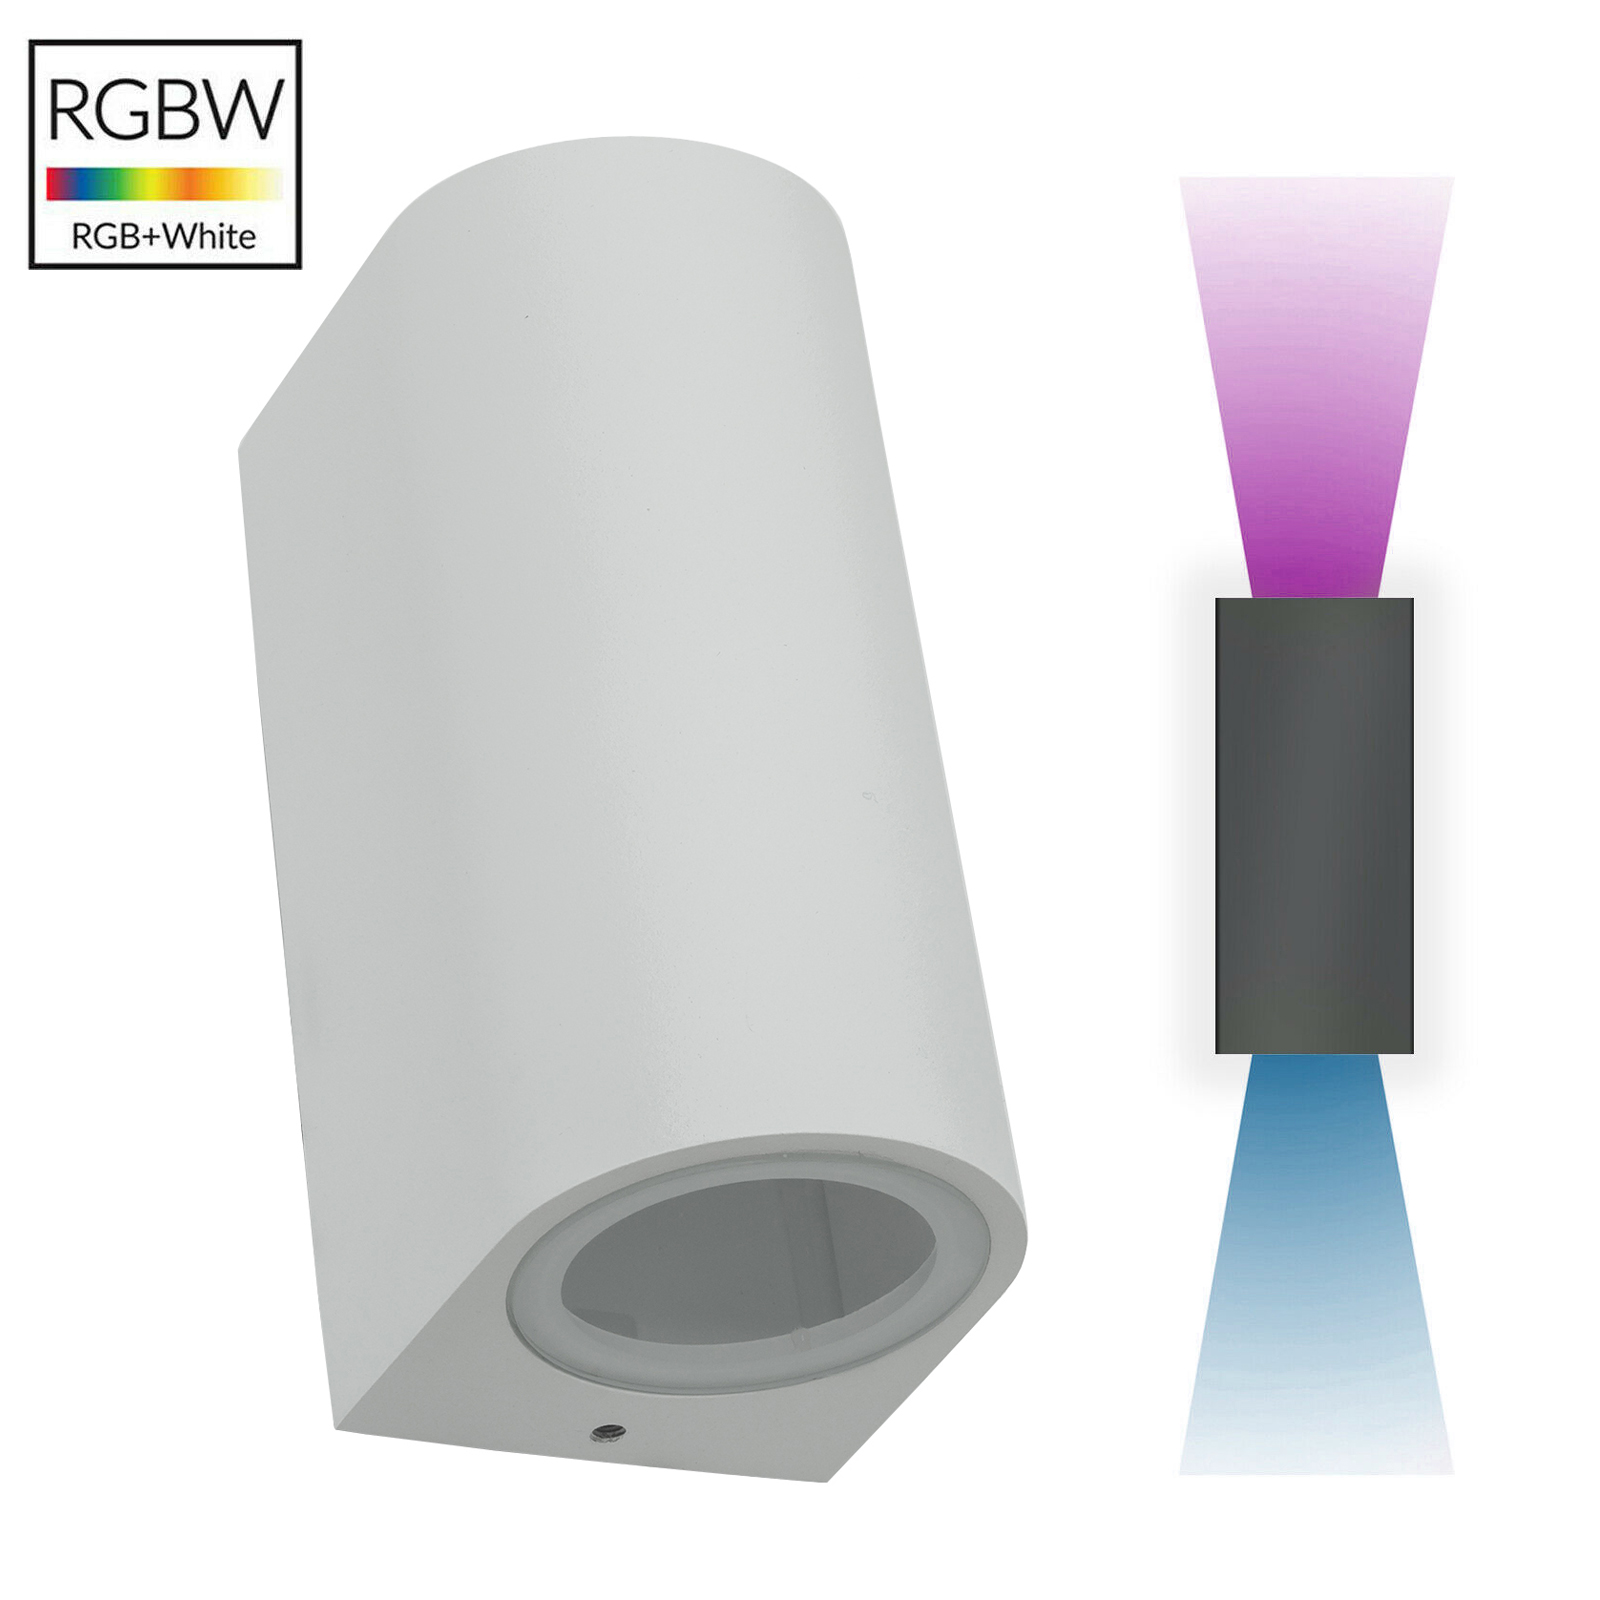 Applique white up down LED light colorful RGB wall facade garden IP65 230V